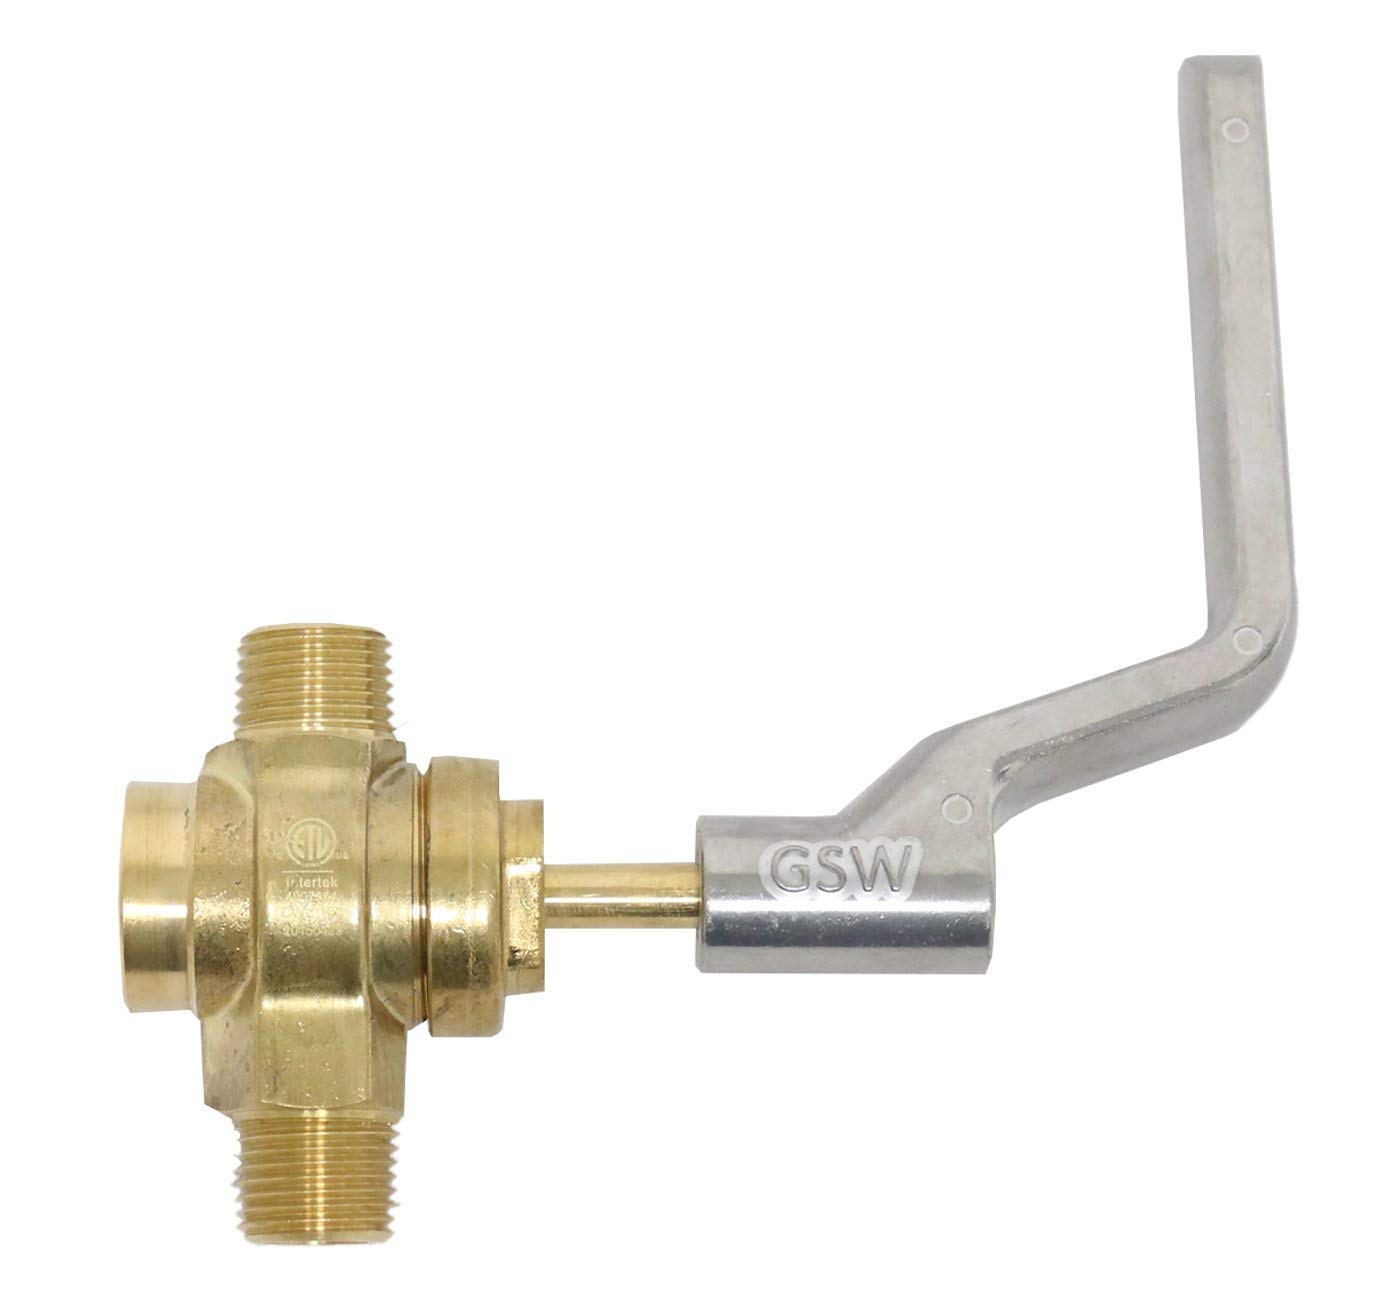 """GSW WR-GV Copper Gas Valve with Handle for Commercial Wok Range, ETL Approved, 1/2"""" NPT X 1/2"""" NPT 1/2 PSI"""